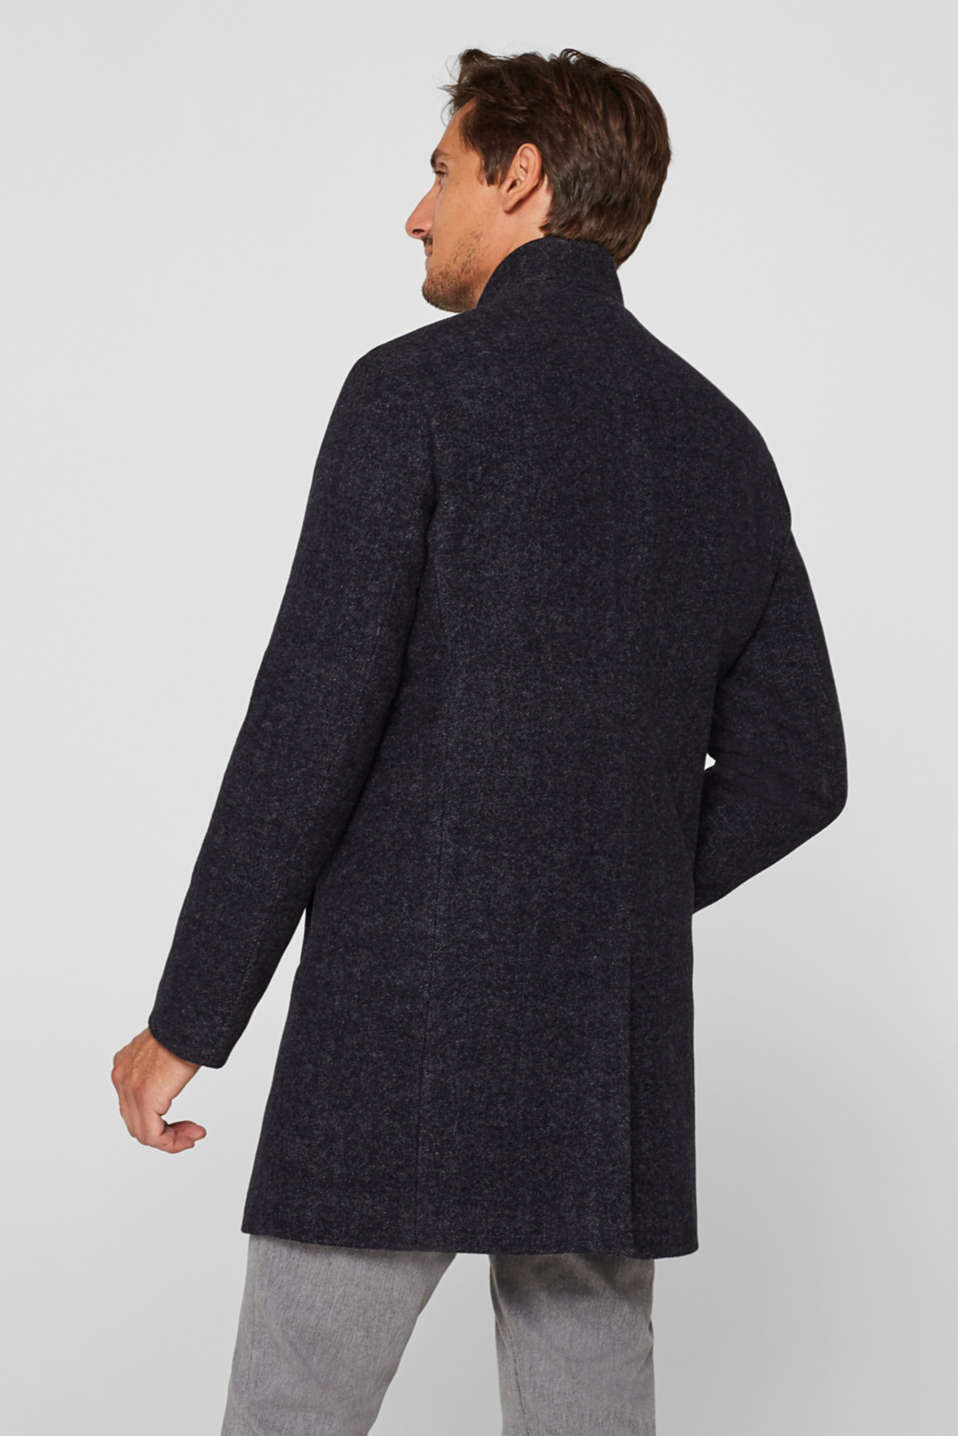 Wool blend: Coat with a herringbone pattern, ANTHRACITE, detail image number 3